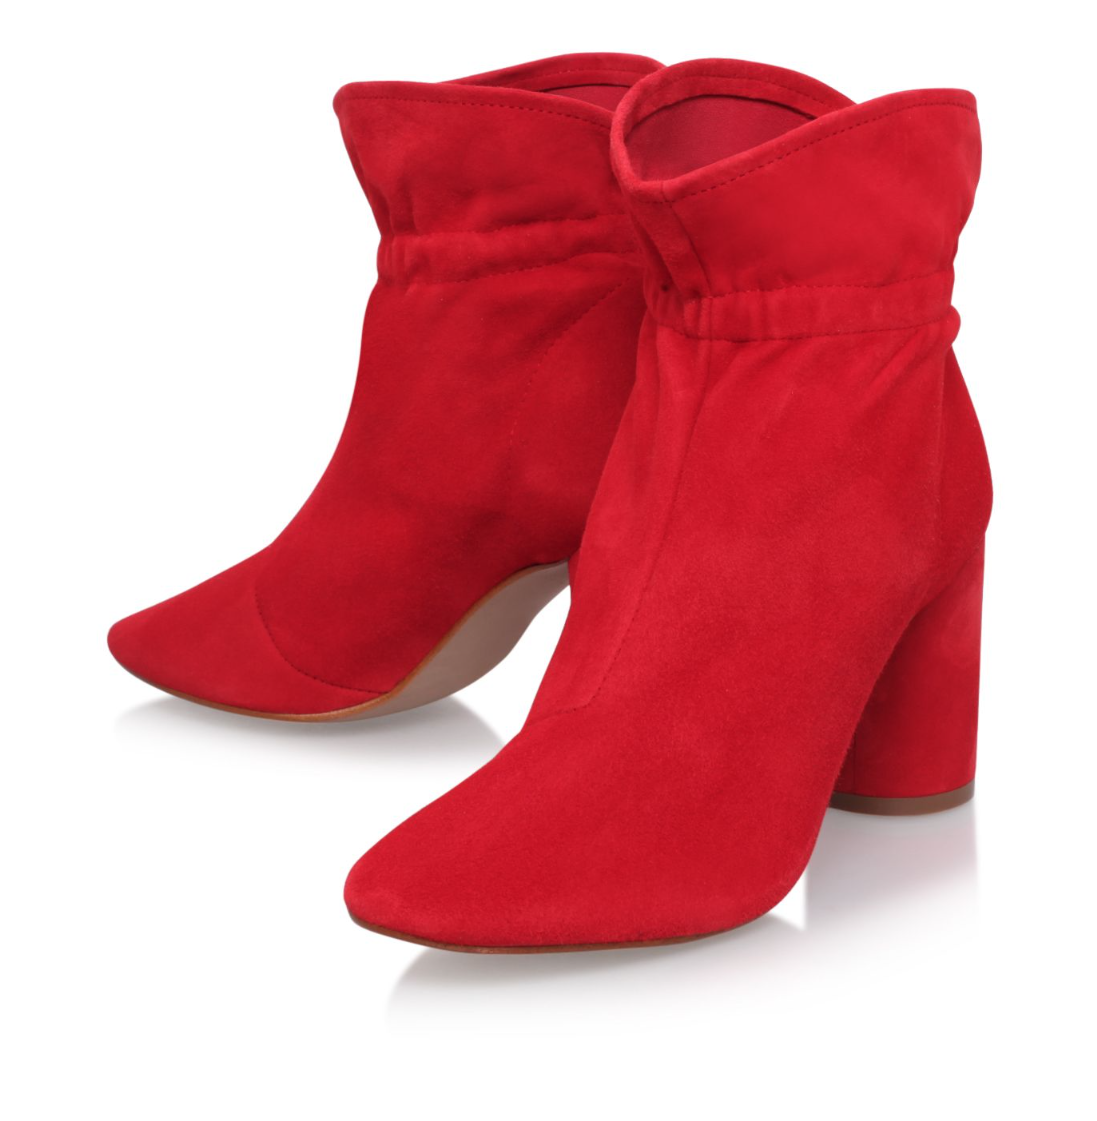 KG Raglan Ankle Boots £49 from £99